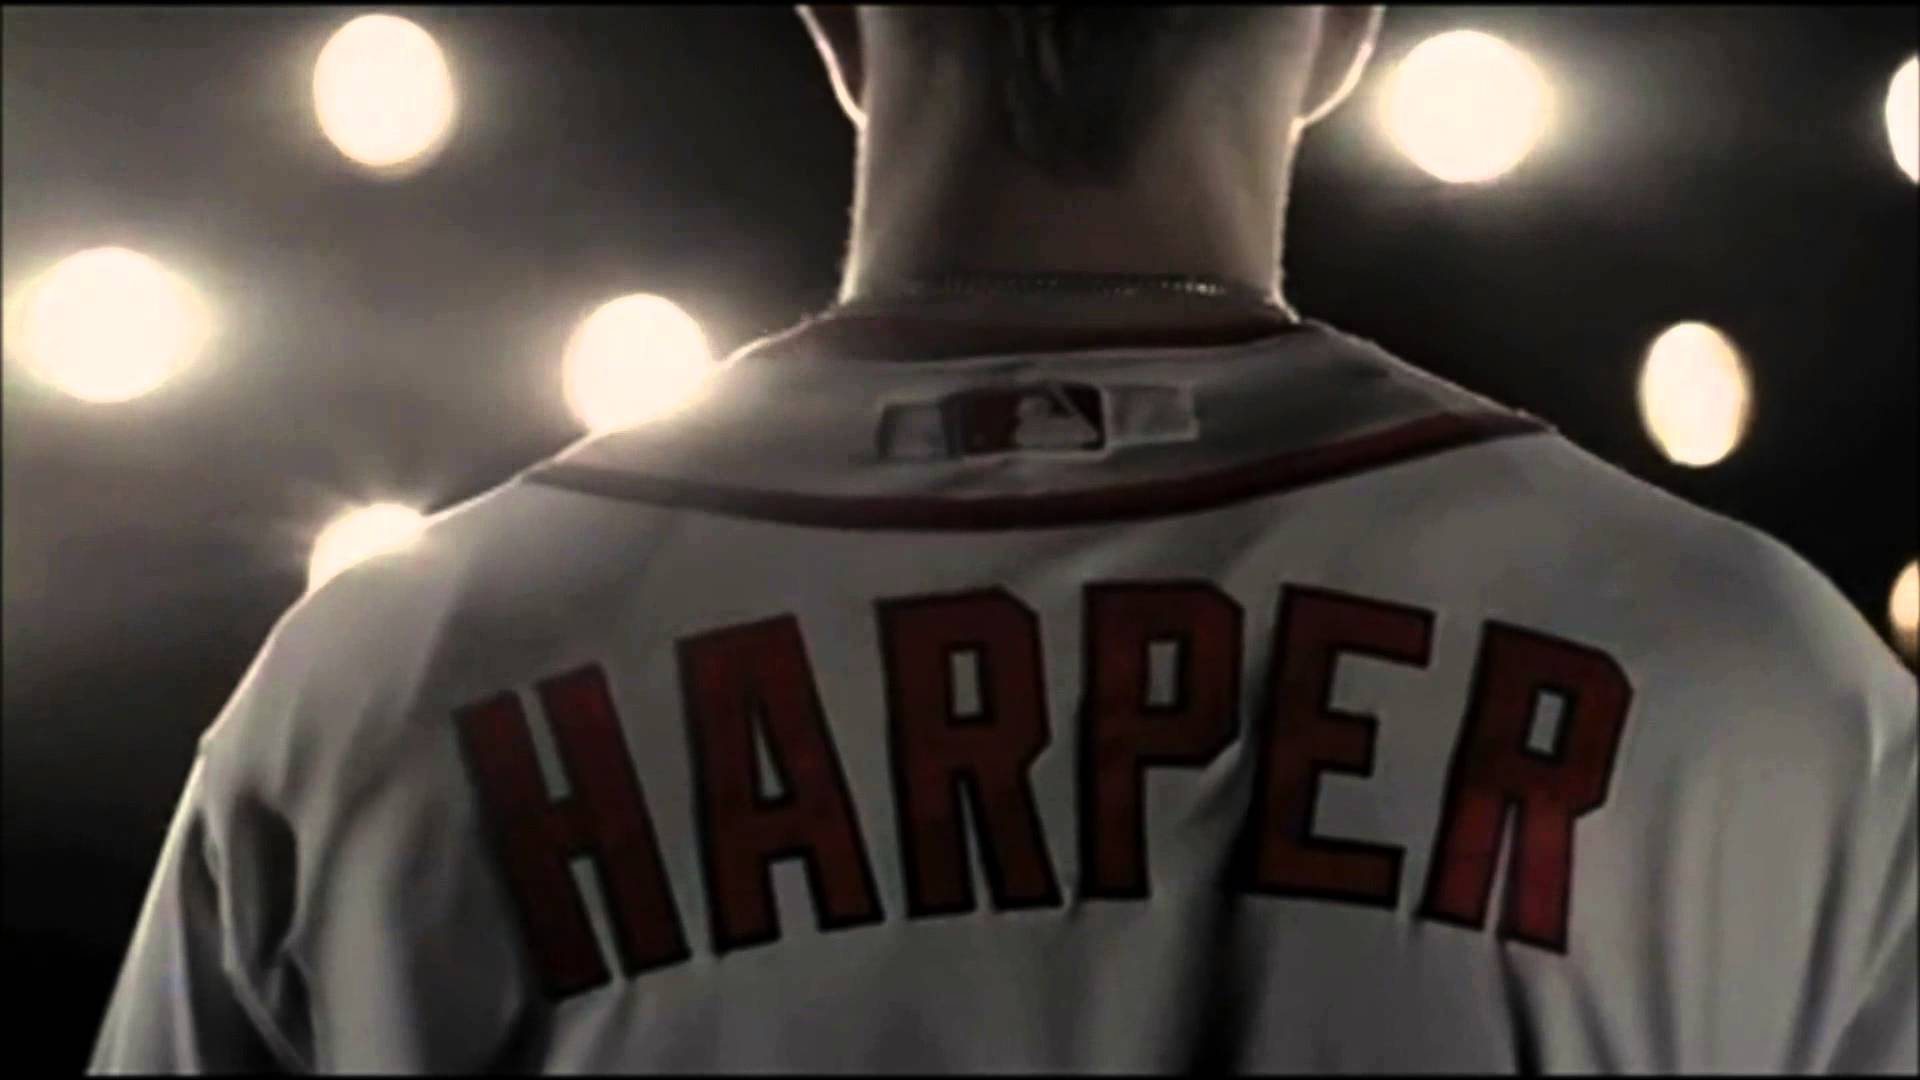 bryce harper wallpaper i will displaying 10 images for bryce harper 1920x1080